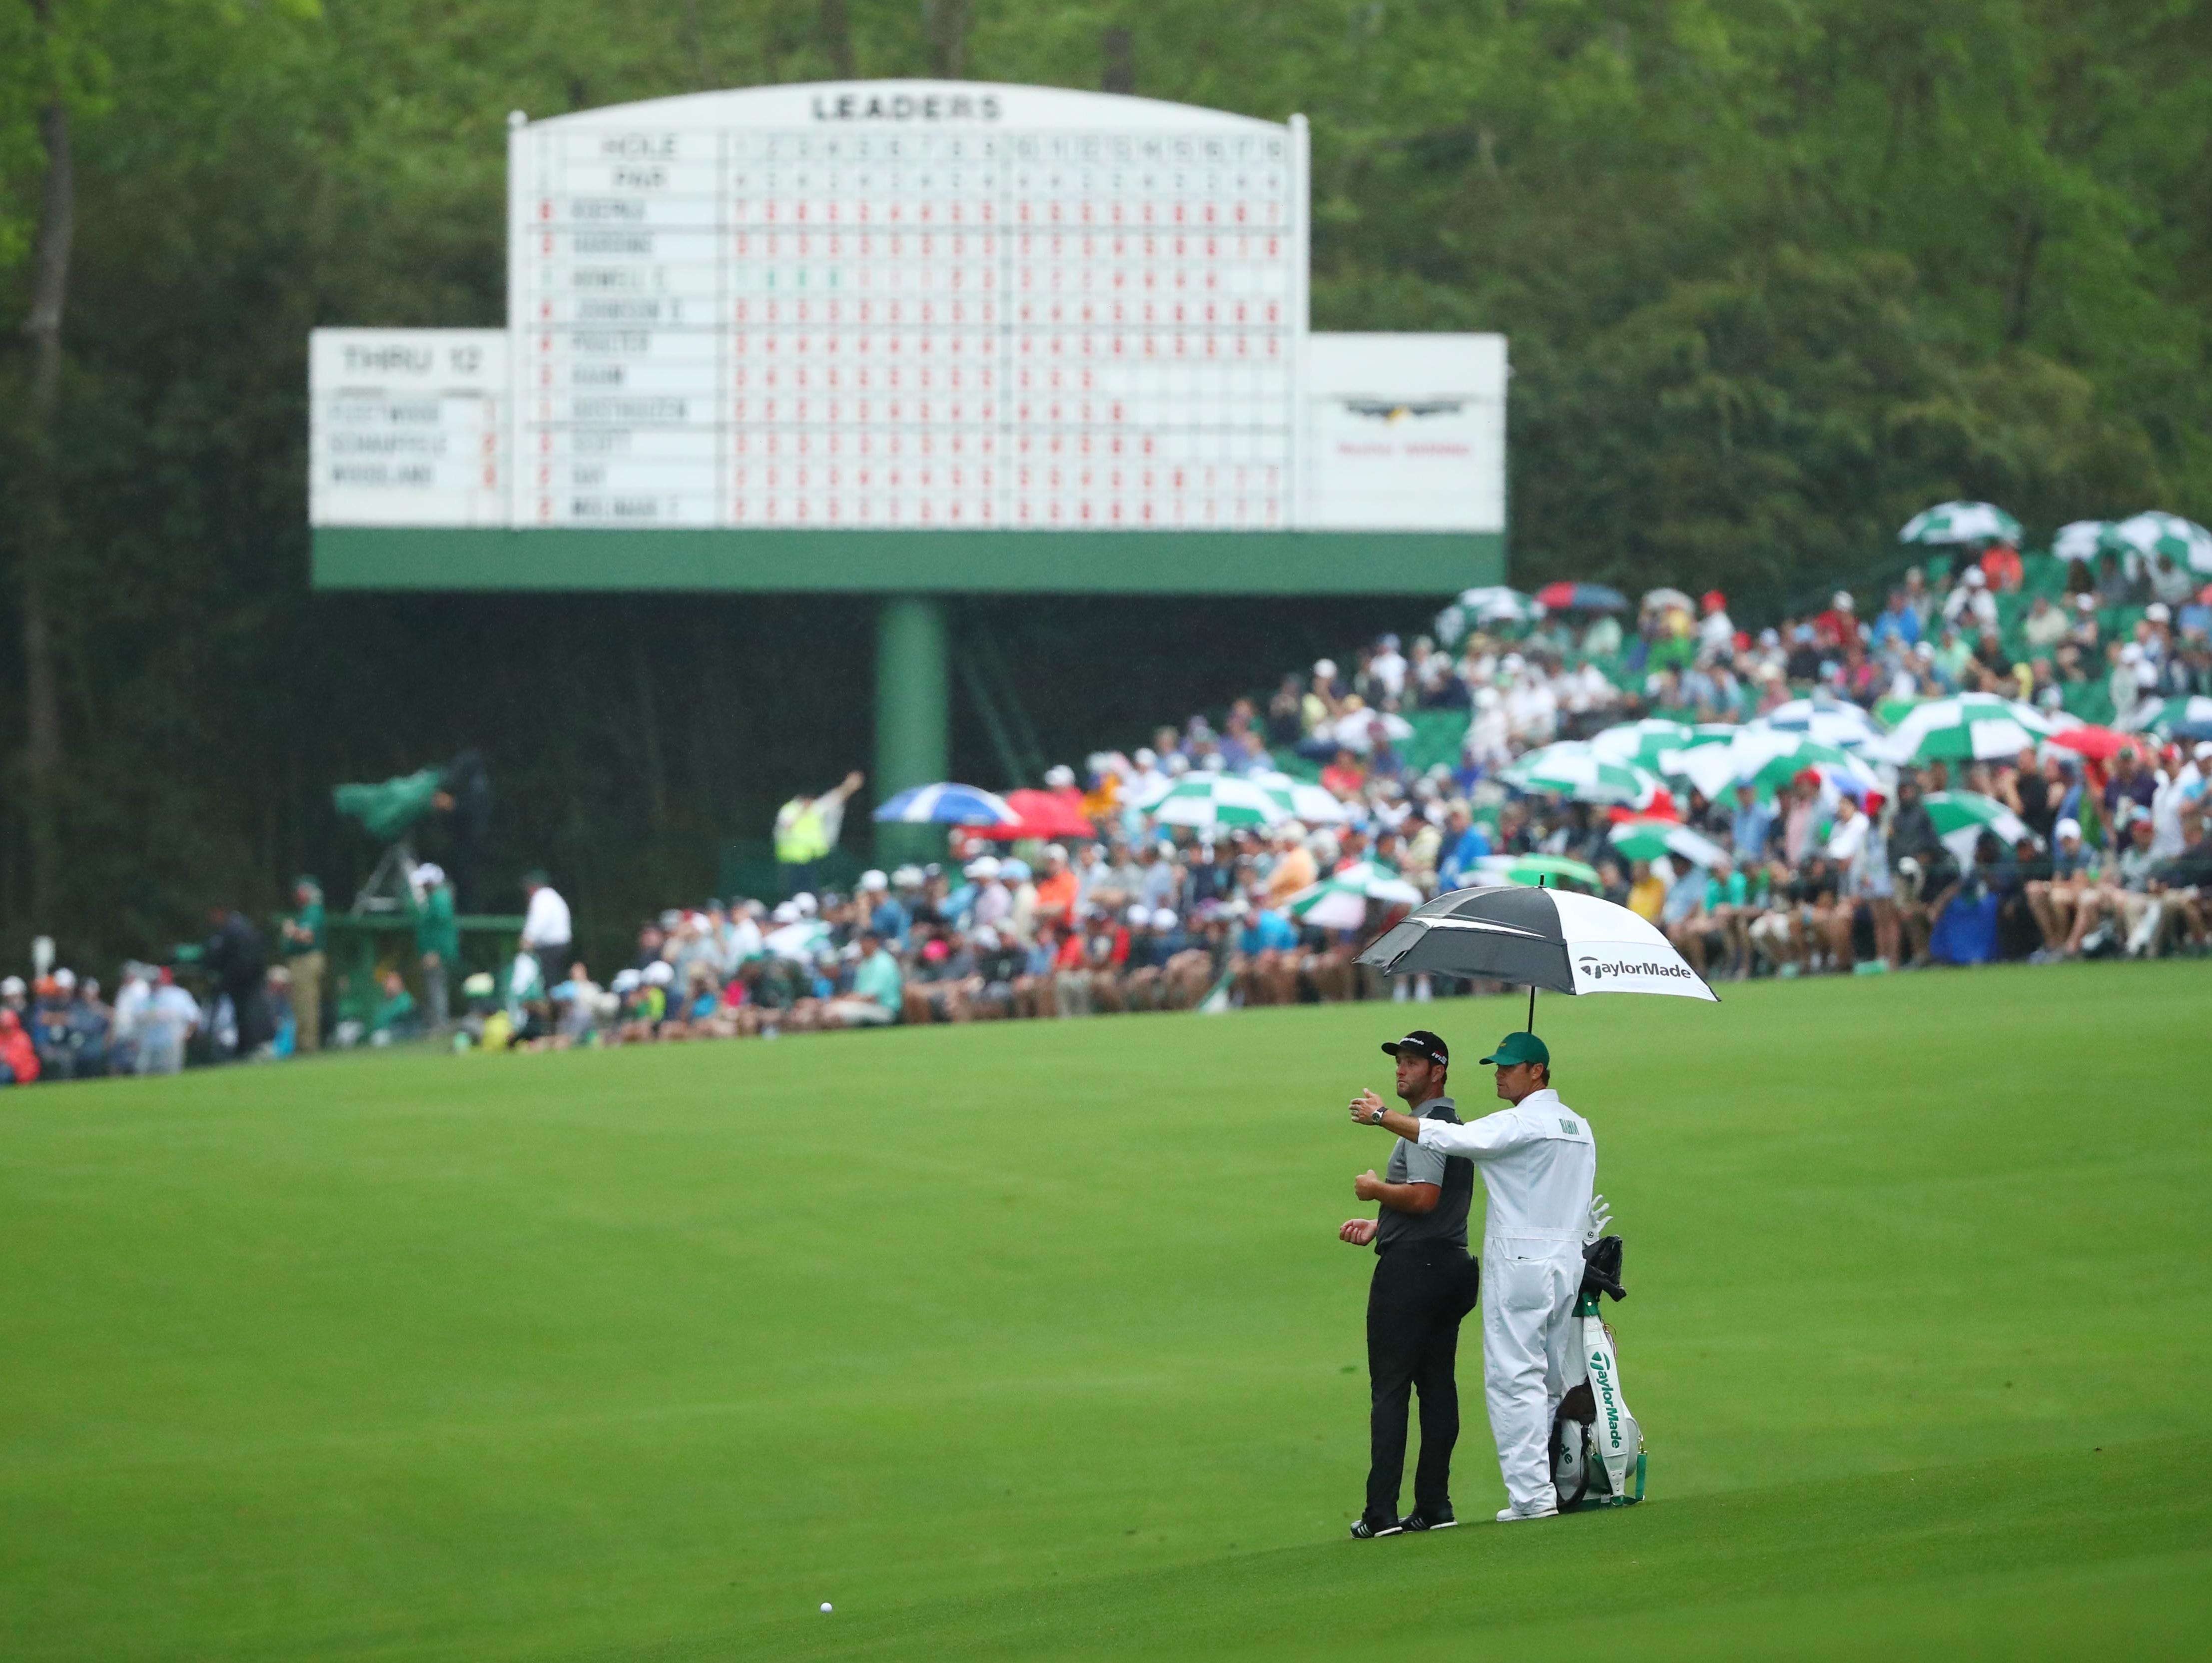 Apr 12, 2019; Augusta, GA, USA; Jon Rahm and caddie Adam Hayes in the 13th fairway during the second round of The Masters golf tournament at Augusta National Golf Club. Mandatory Credit: Rob Schumacher-USA TODAY Sports